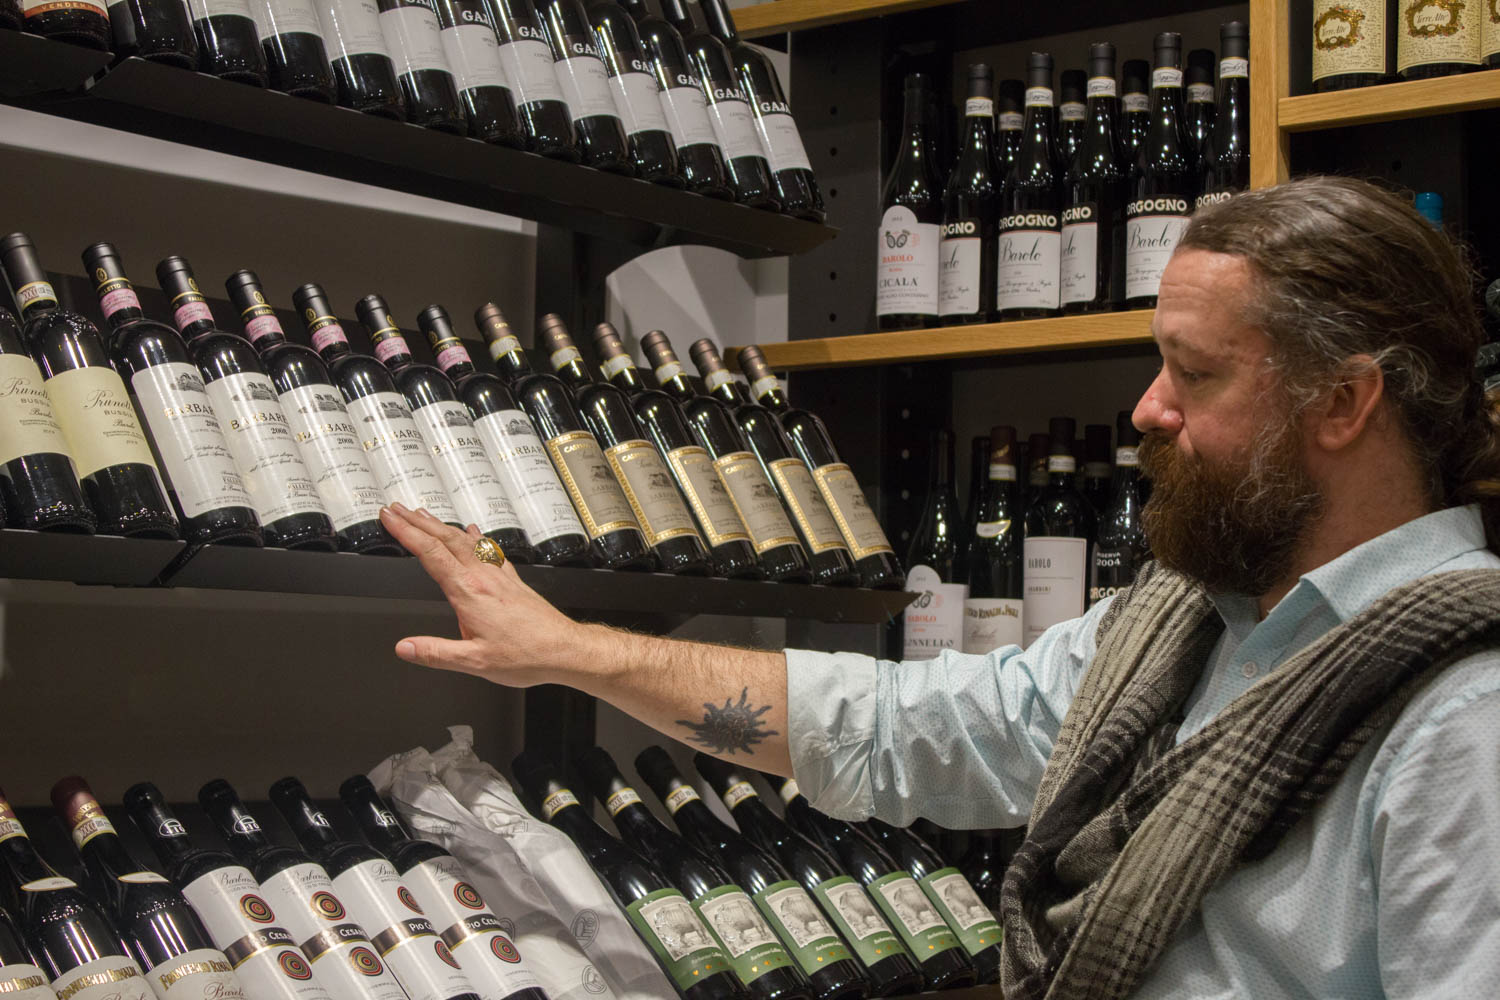 John McKusick, who works in Eataly's wine store and buys beer for the company, discusses what is available in the Reserve Room.